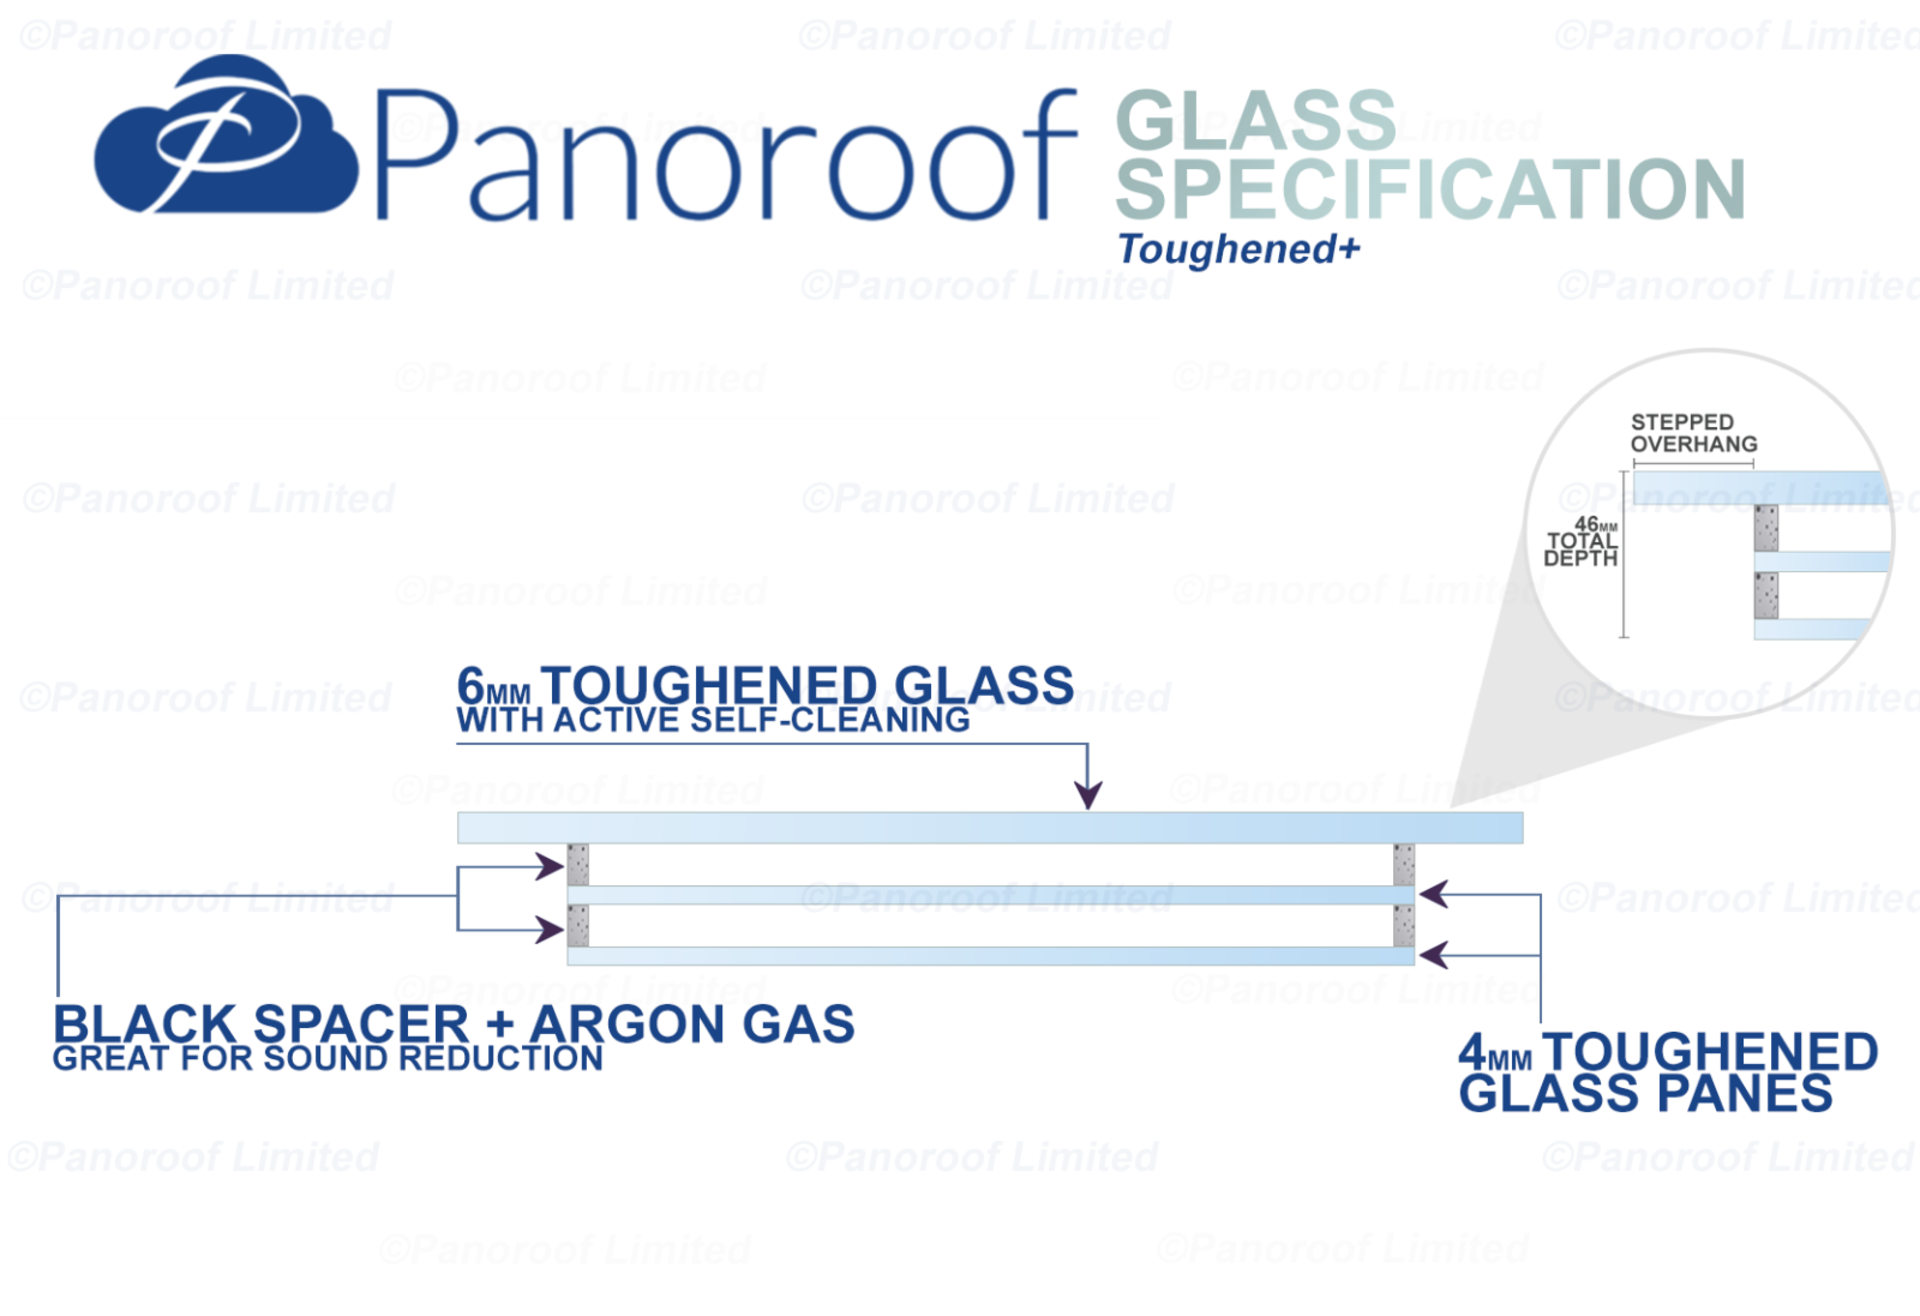 """""""""""""""Panoroof Triple Glazed Self Cleaning 1200x2400mm (inside Size Visable glass area) Seamless - Image 5 of 6"""